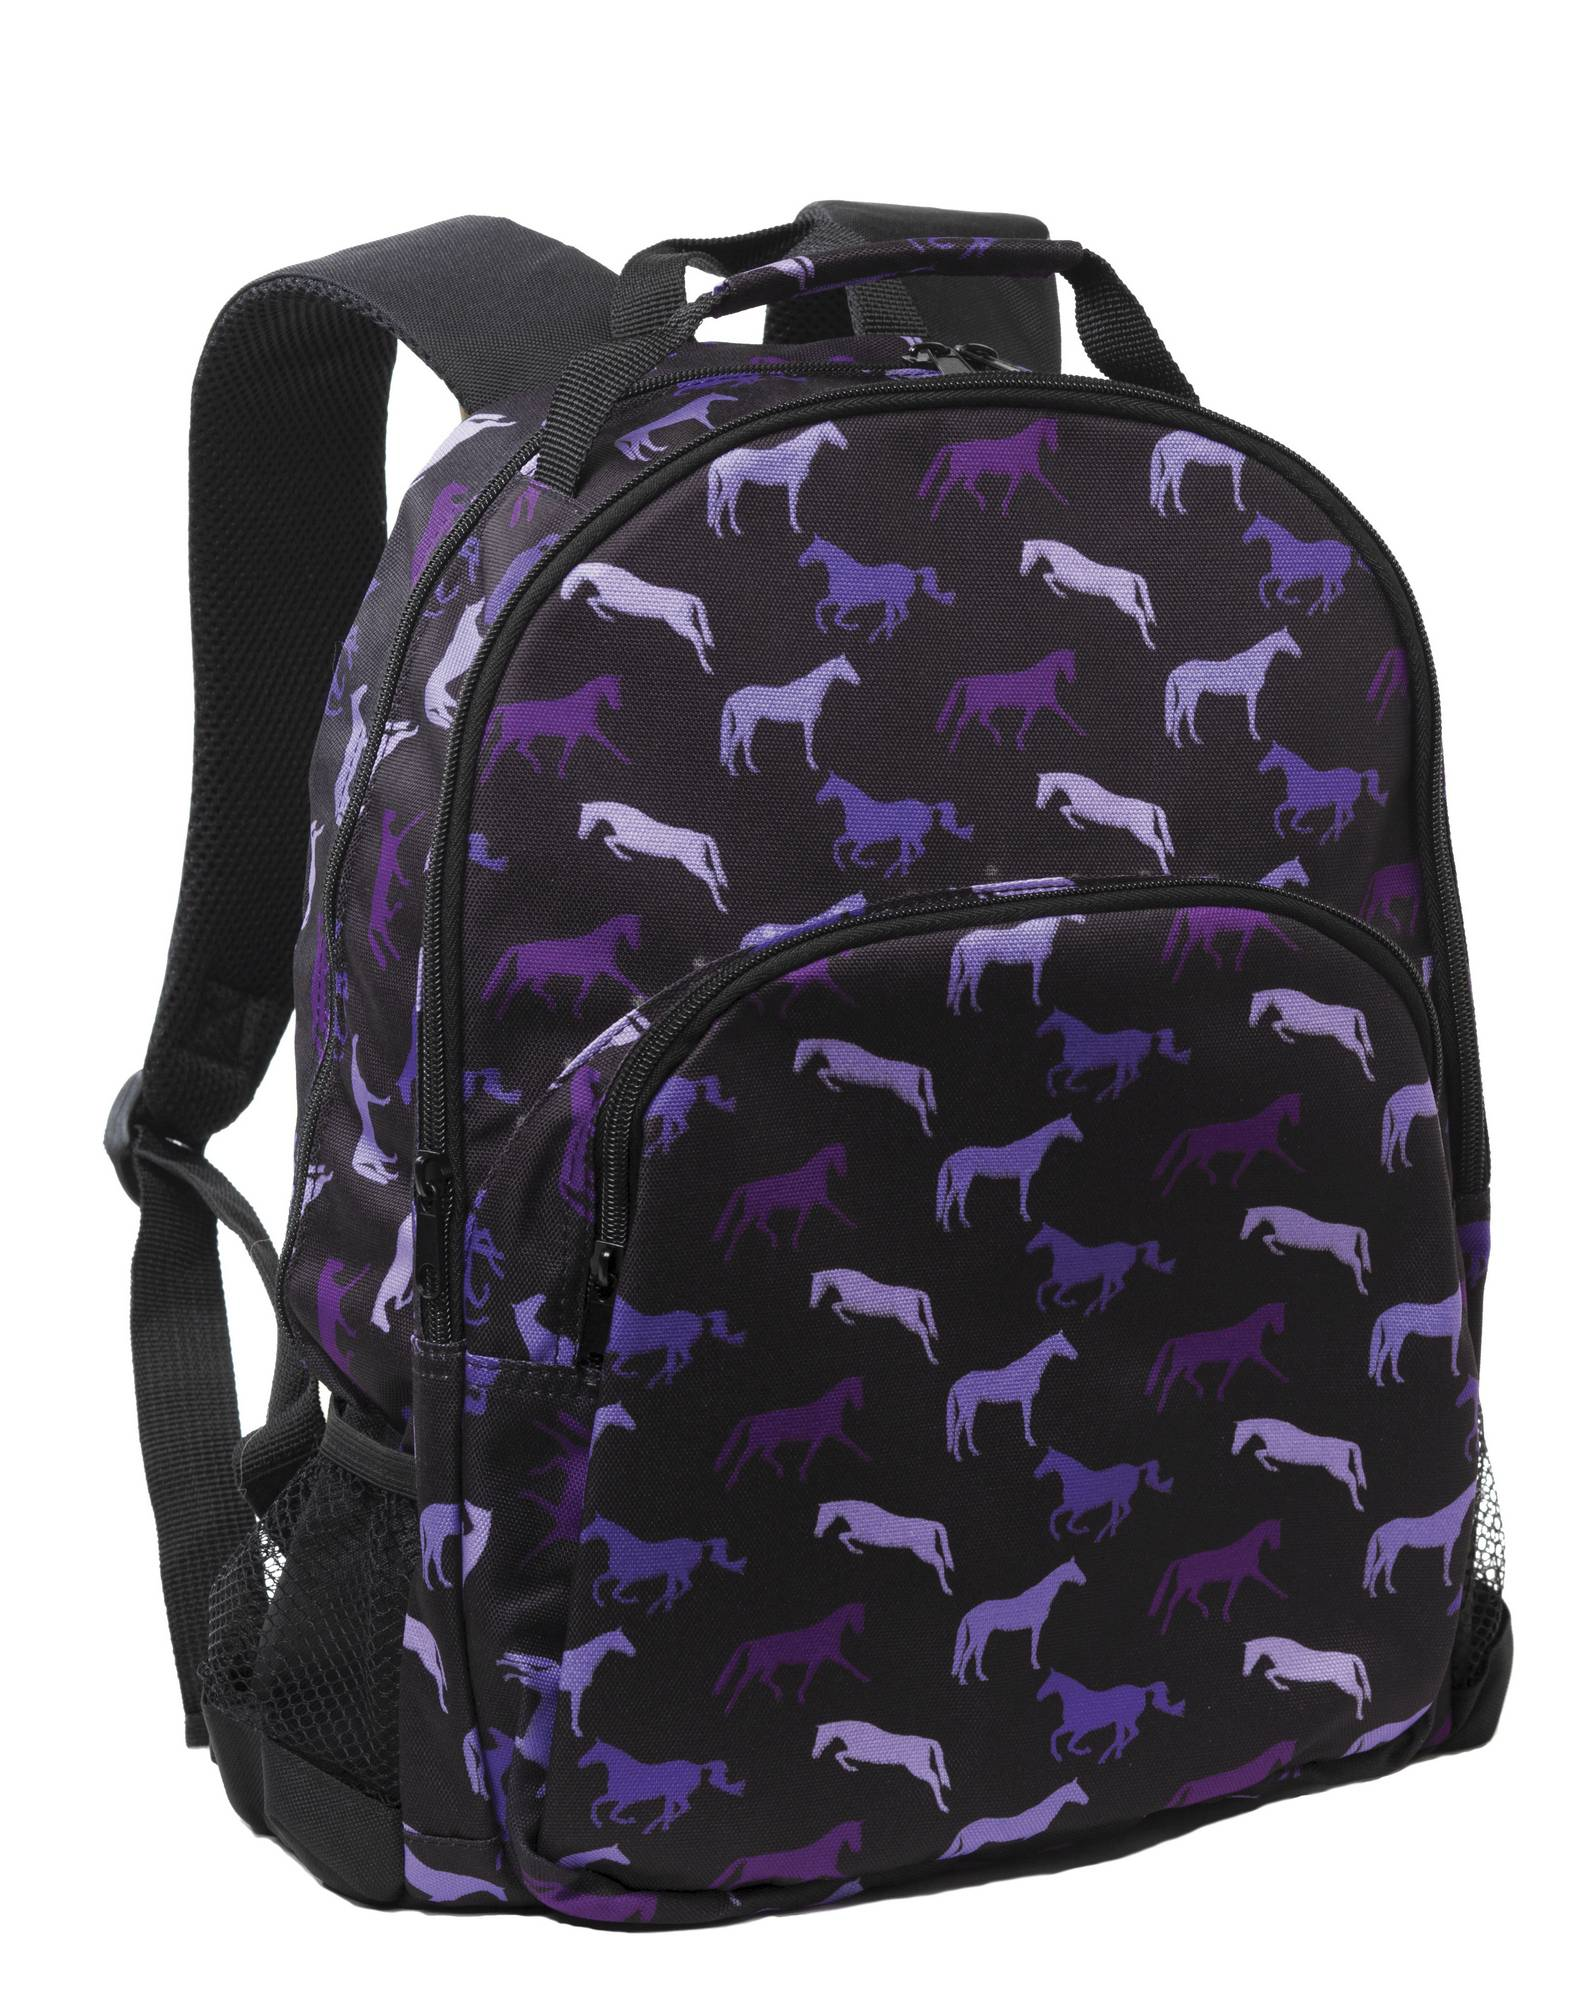 Tek Trek Shades of Horses Backpack